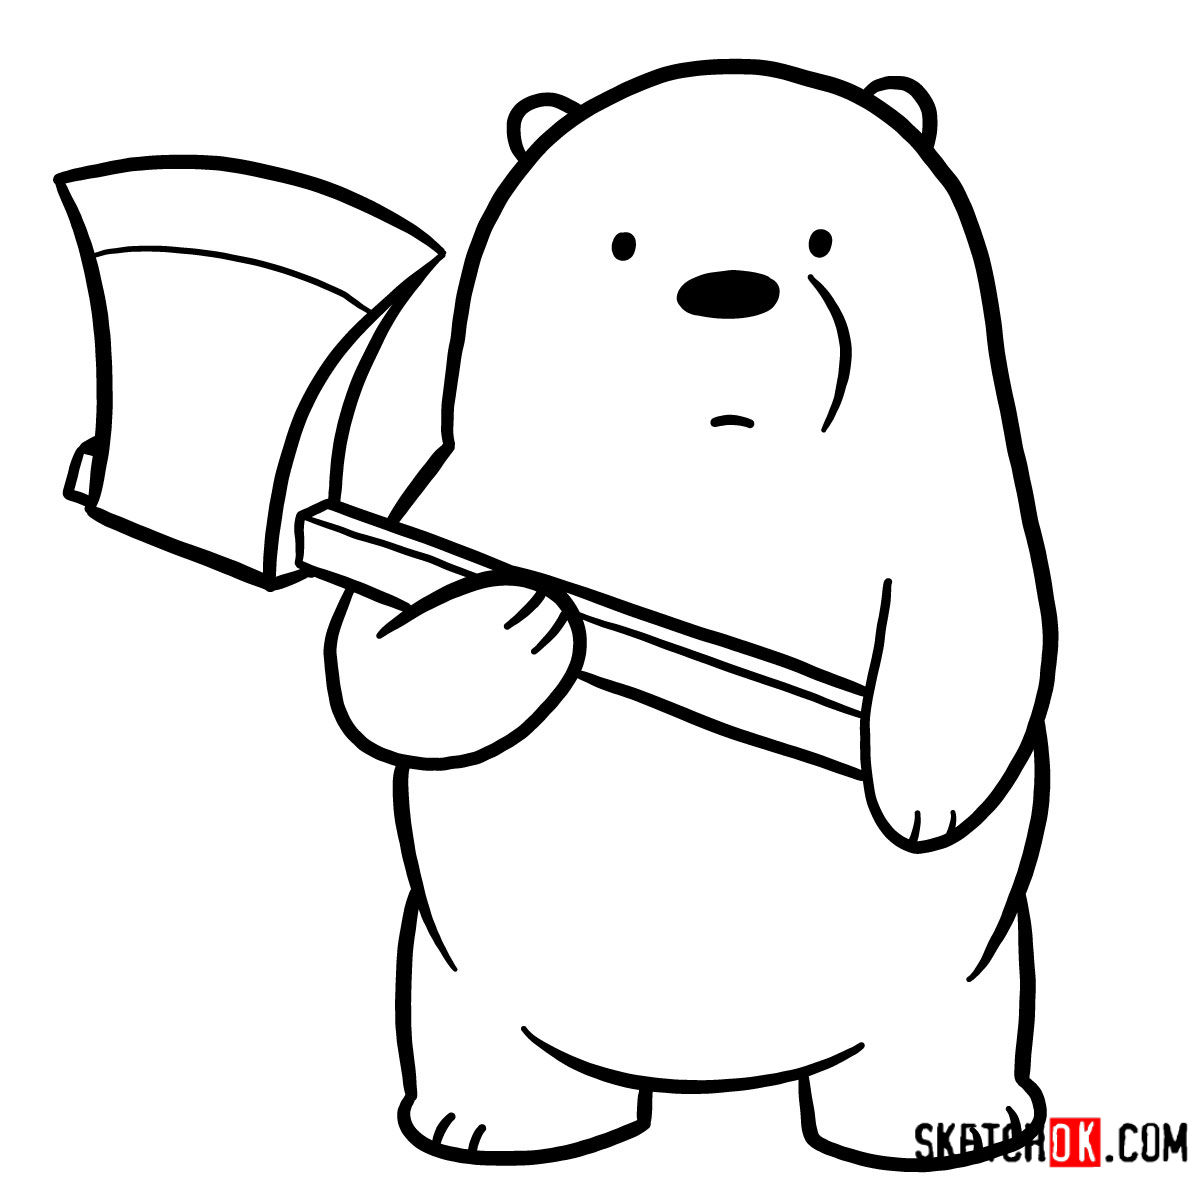 How to draw Ice Bear with an axe | We Bare Bears - step 08